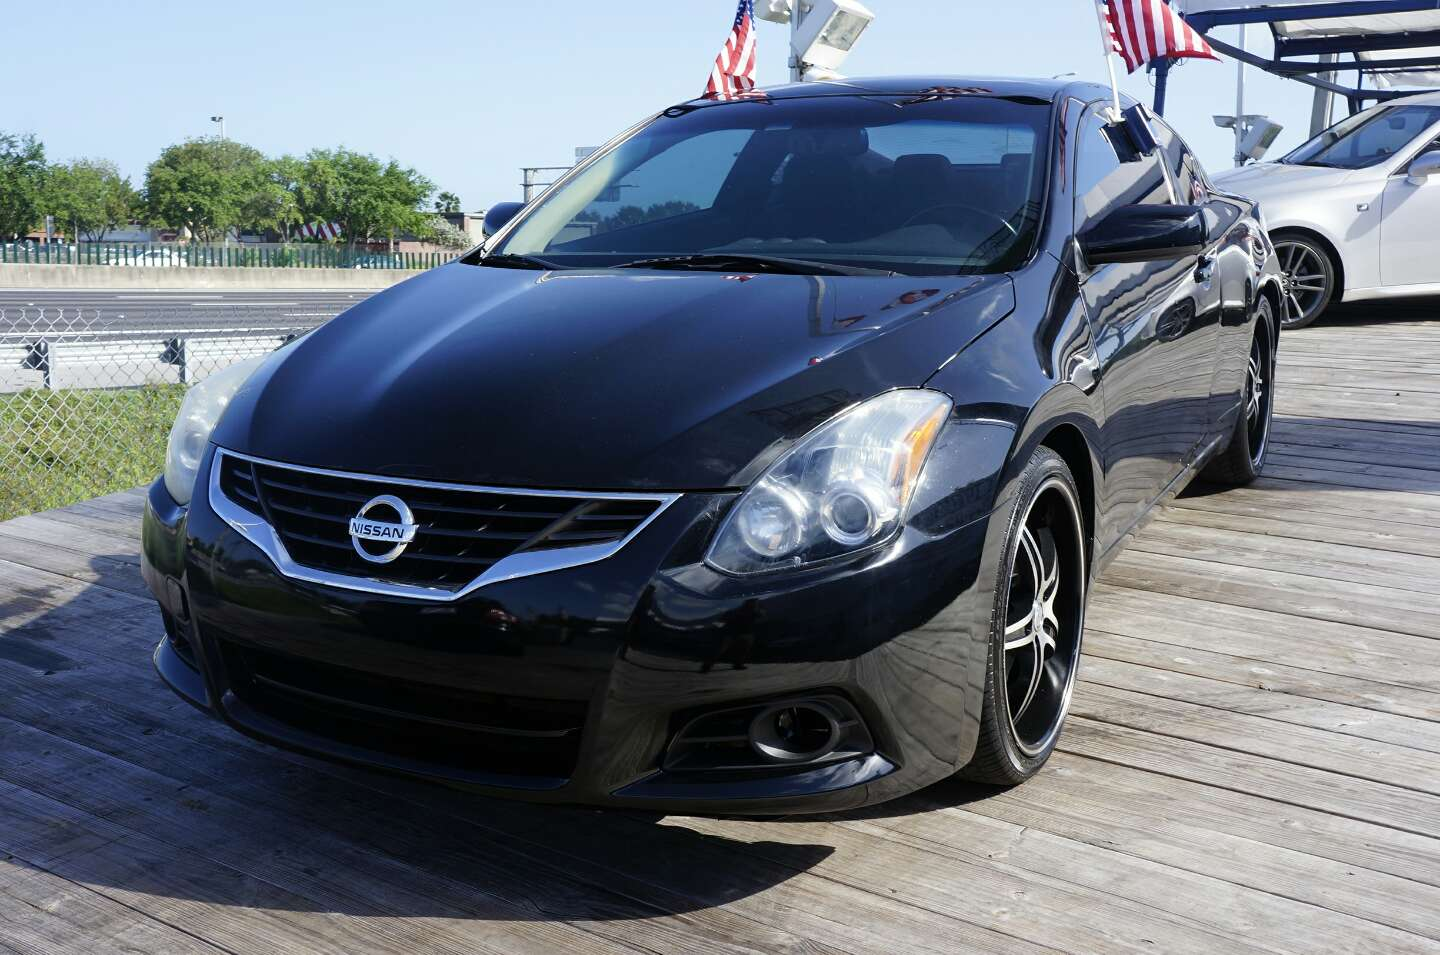 2009 nissan altima for sale in hollywood fl 5miles buy and sell. Black Bedroom Furniture Sets. Home Design Ideas